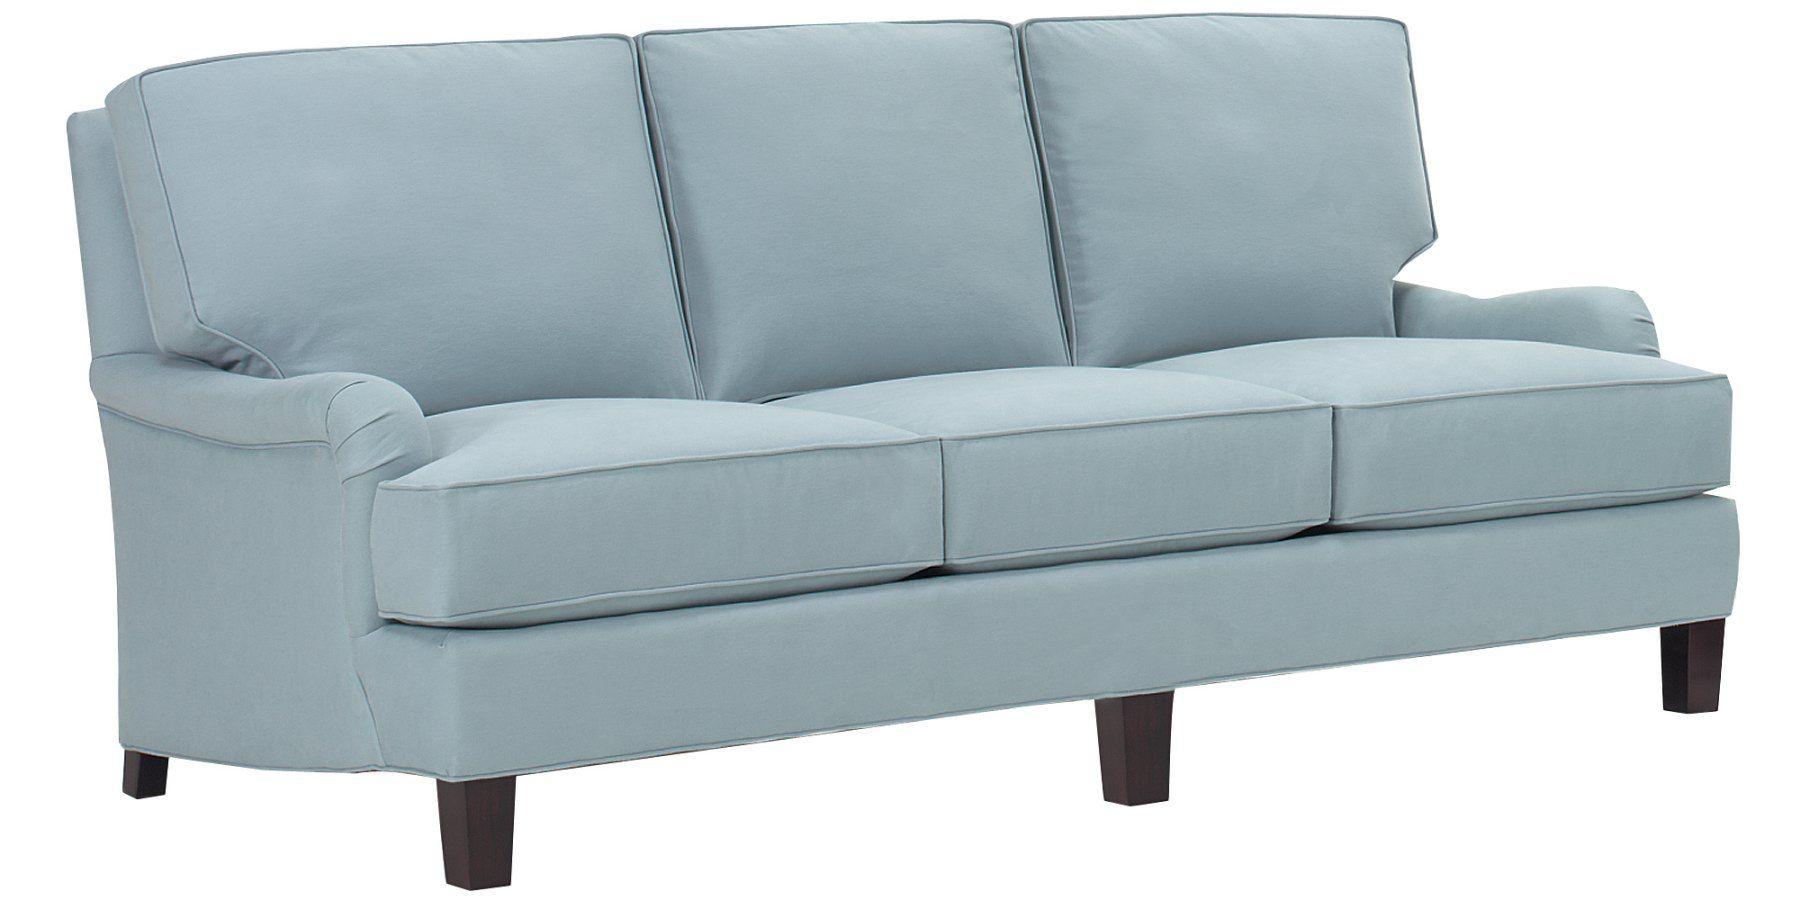 Nice Charles Of London Sofa Beautiful 99 For Living Room